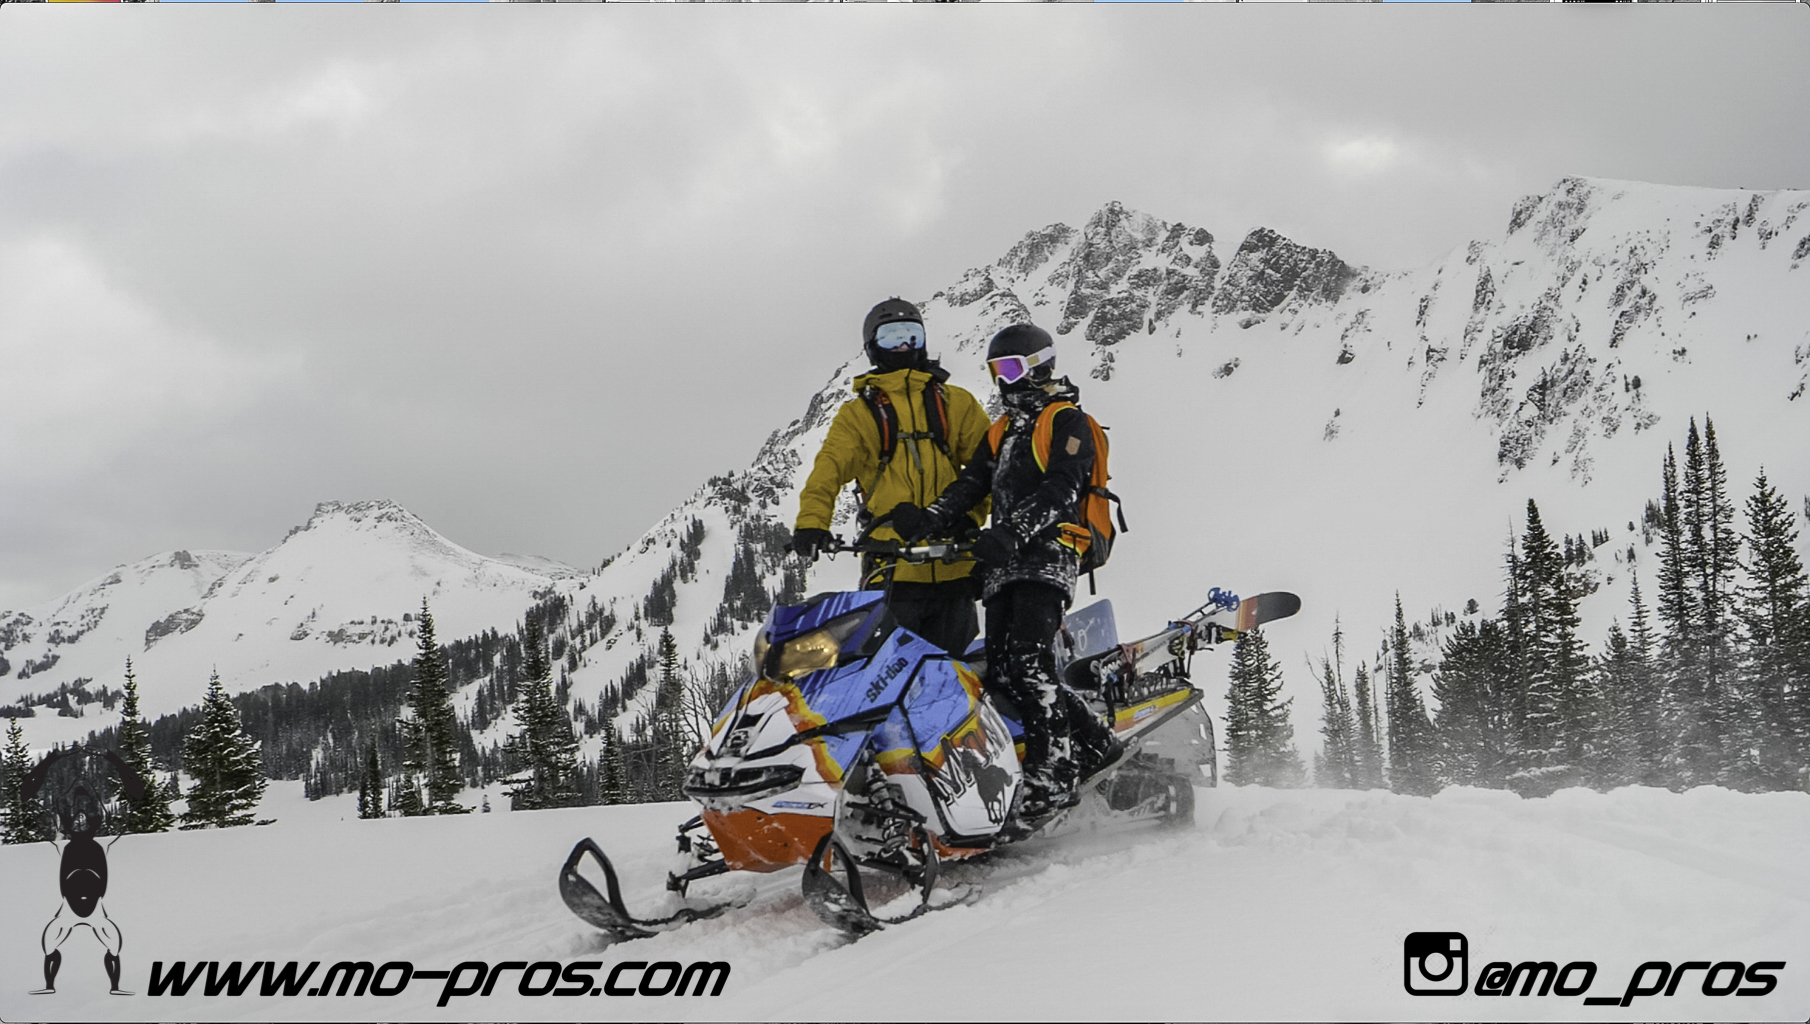 124_Backcountry _Backcountry United_Rack_Ski_Snowbike_Timbersled Rack_Tsaina Rack_CFR rack_Cheetah Factory Racing_gas Rack_Gear_Gun Rack_LinQ Snowboard Ski_Snowboard rack_snowboard_Snowboarding_snowm.jpg